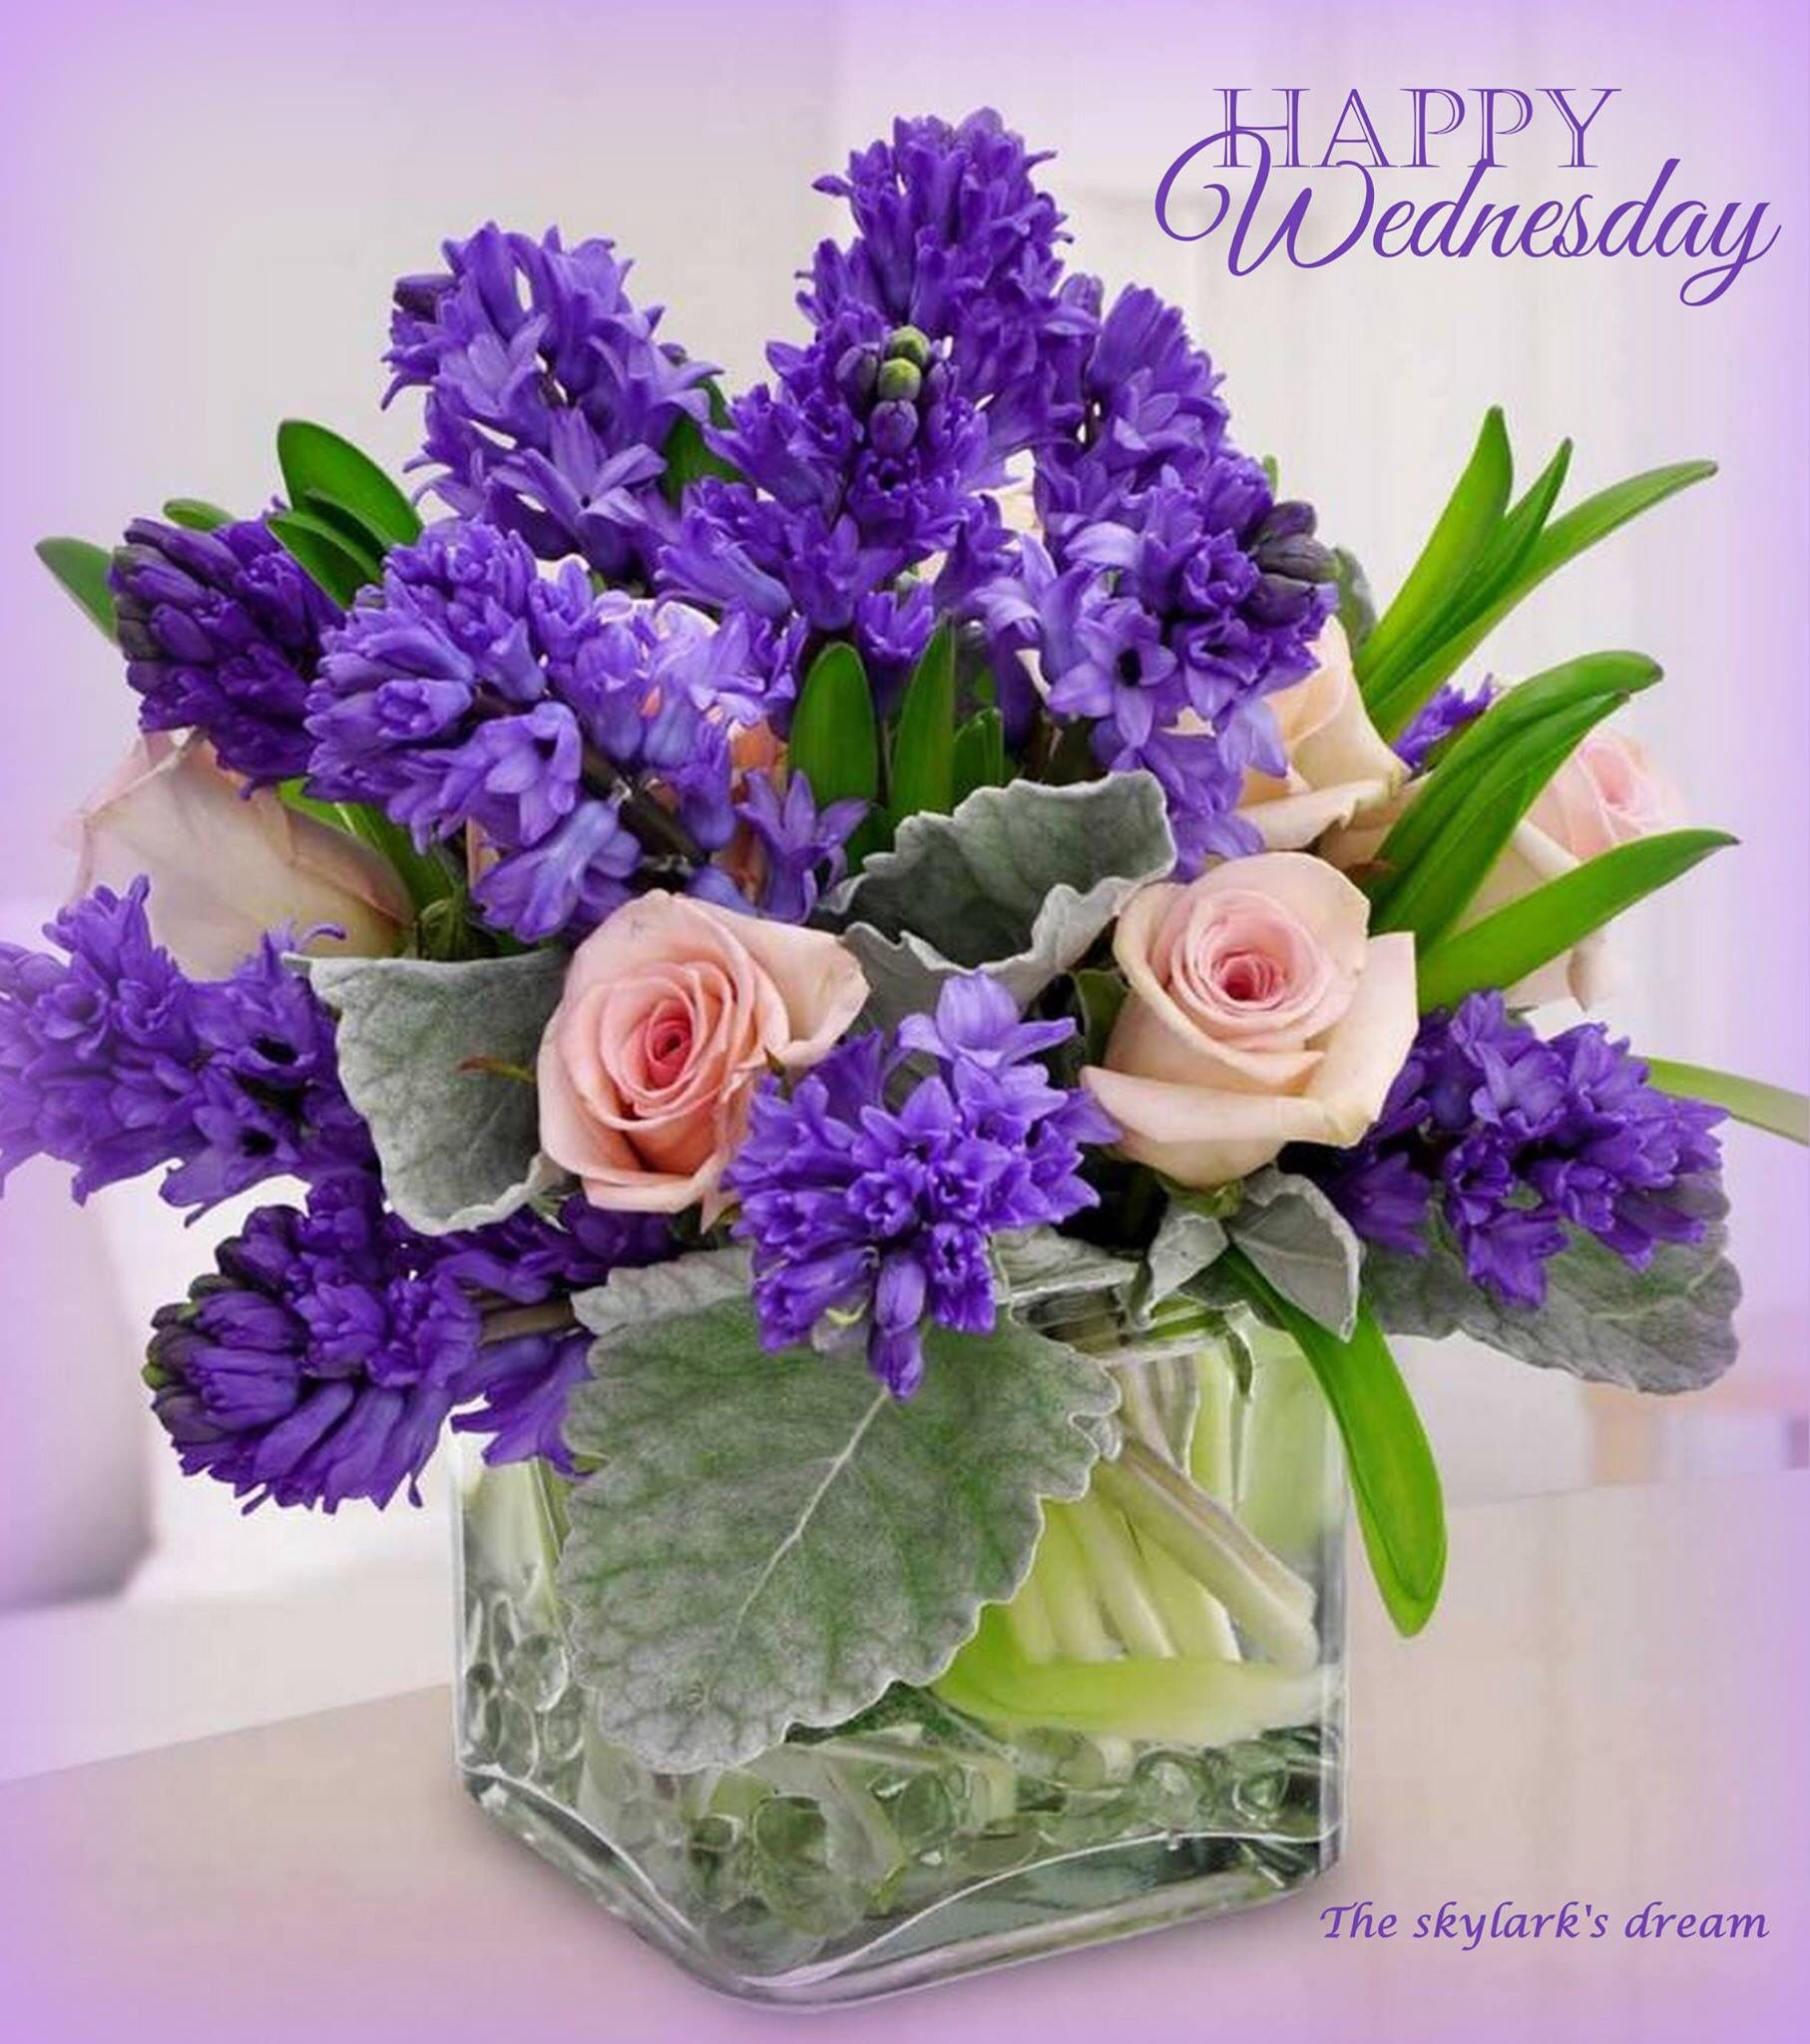 Happy Wednesday Quotes & Blessings - Good Morning Fun |Wednesday Flowers